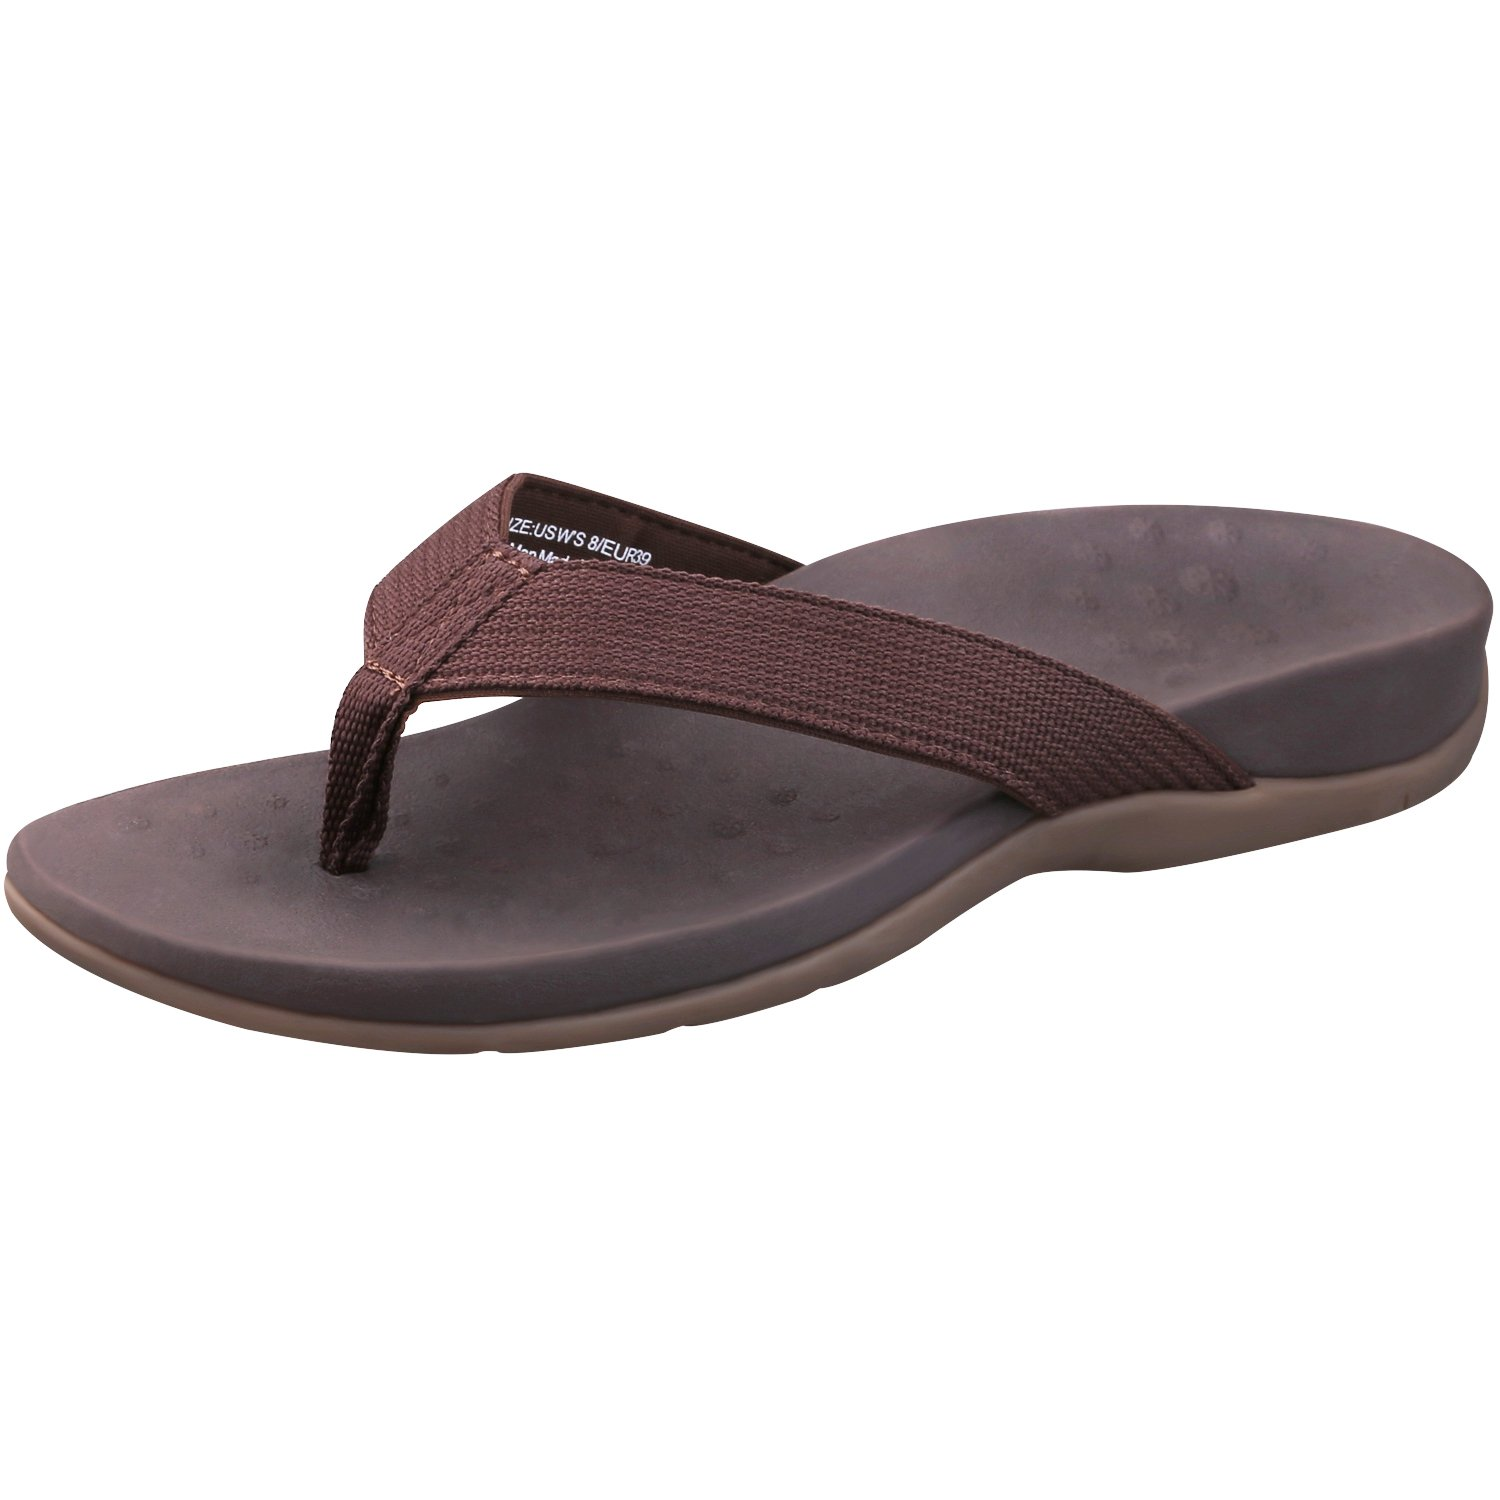 db6fe0176450 SESSOM CO Women s Orthotic Sandals with Great Arch Support Stylish Flip  Flops Sandals for Plantar Fasciitis  Amazon.co.uk  Shoes   Bags